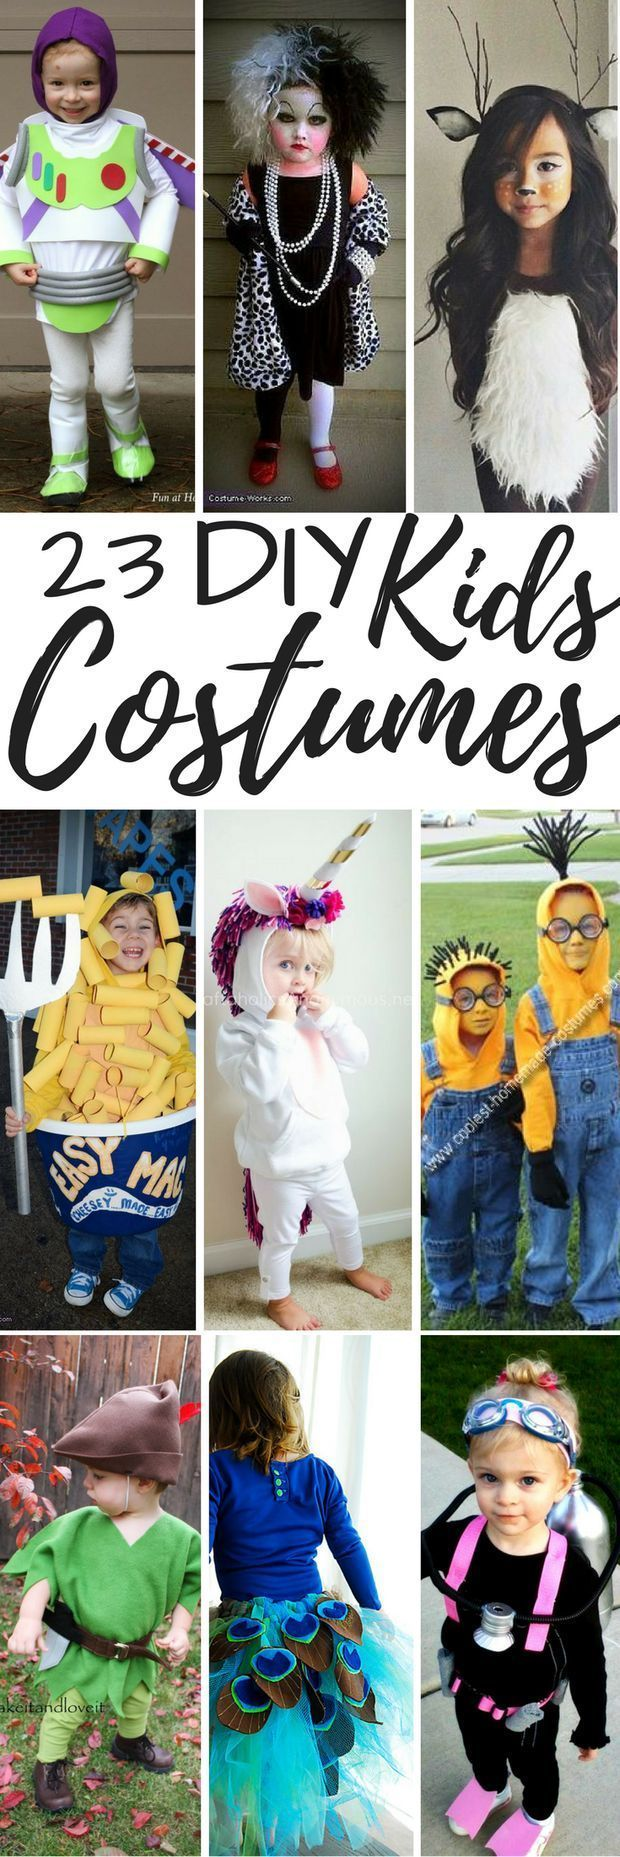 23 DIY Kids Costumes | Kids Halloween Costume | Make It Yourself outfit